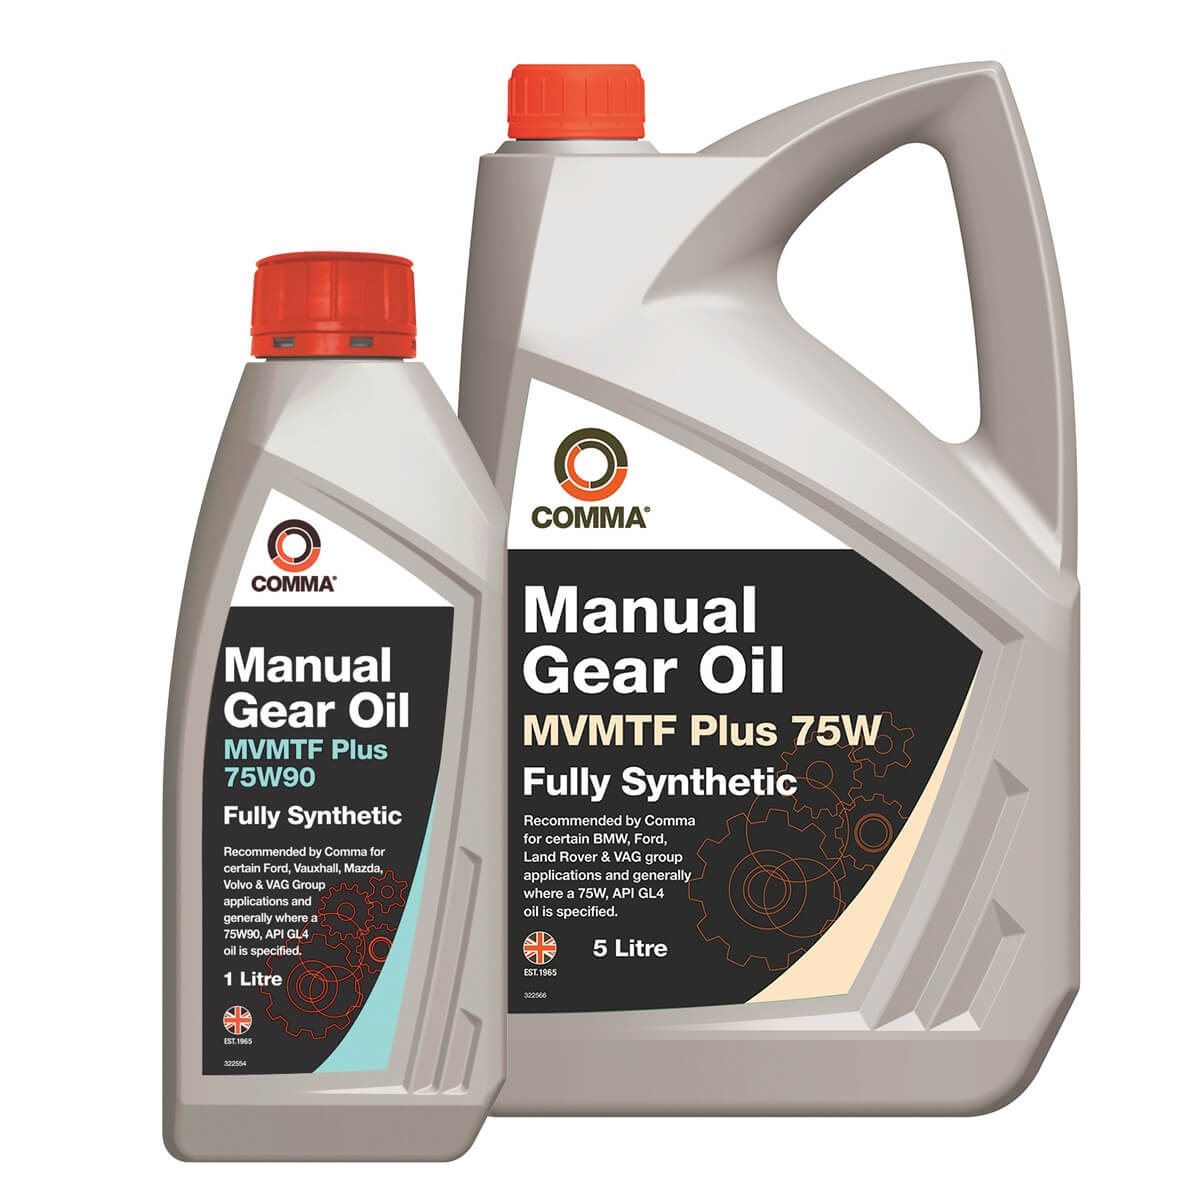 FIAT 500X Manual Transmission Oil